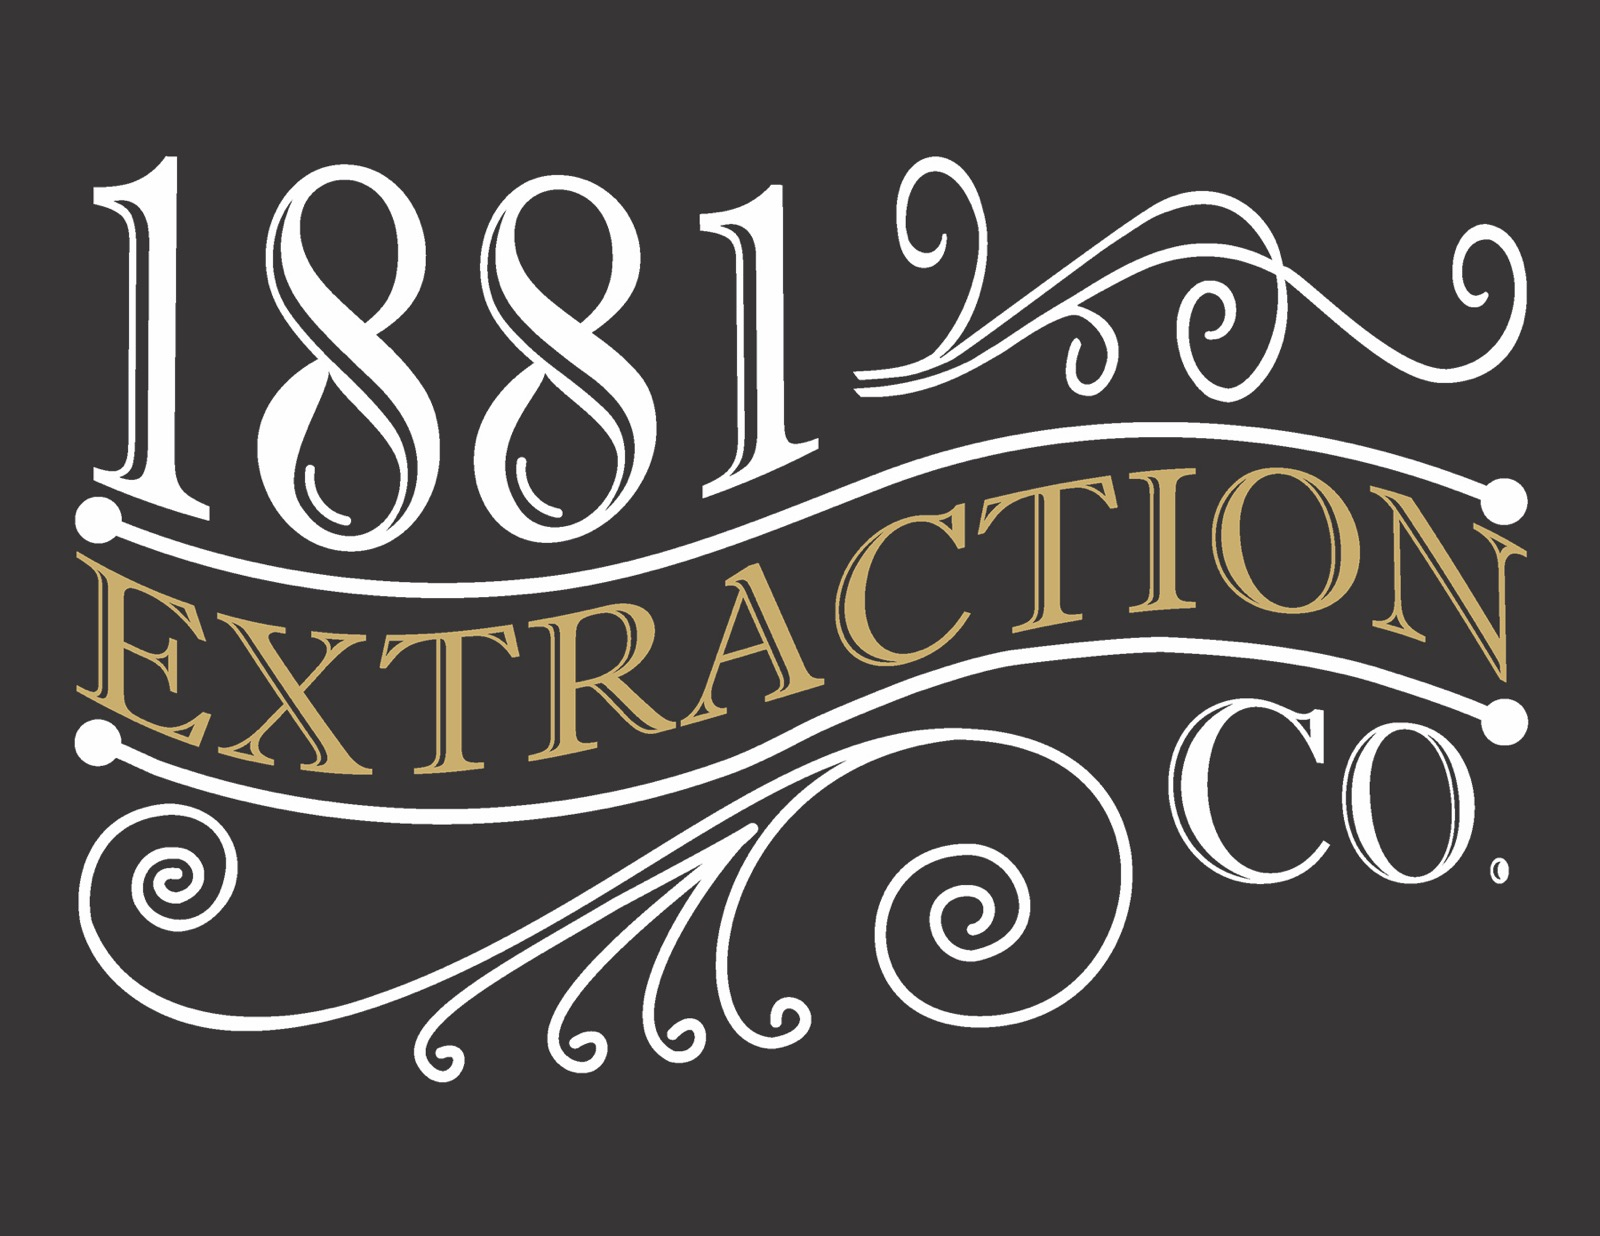 1881 Extraction Co..jpeg